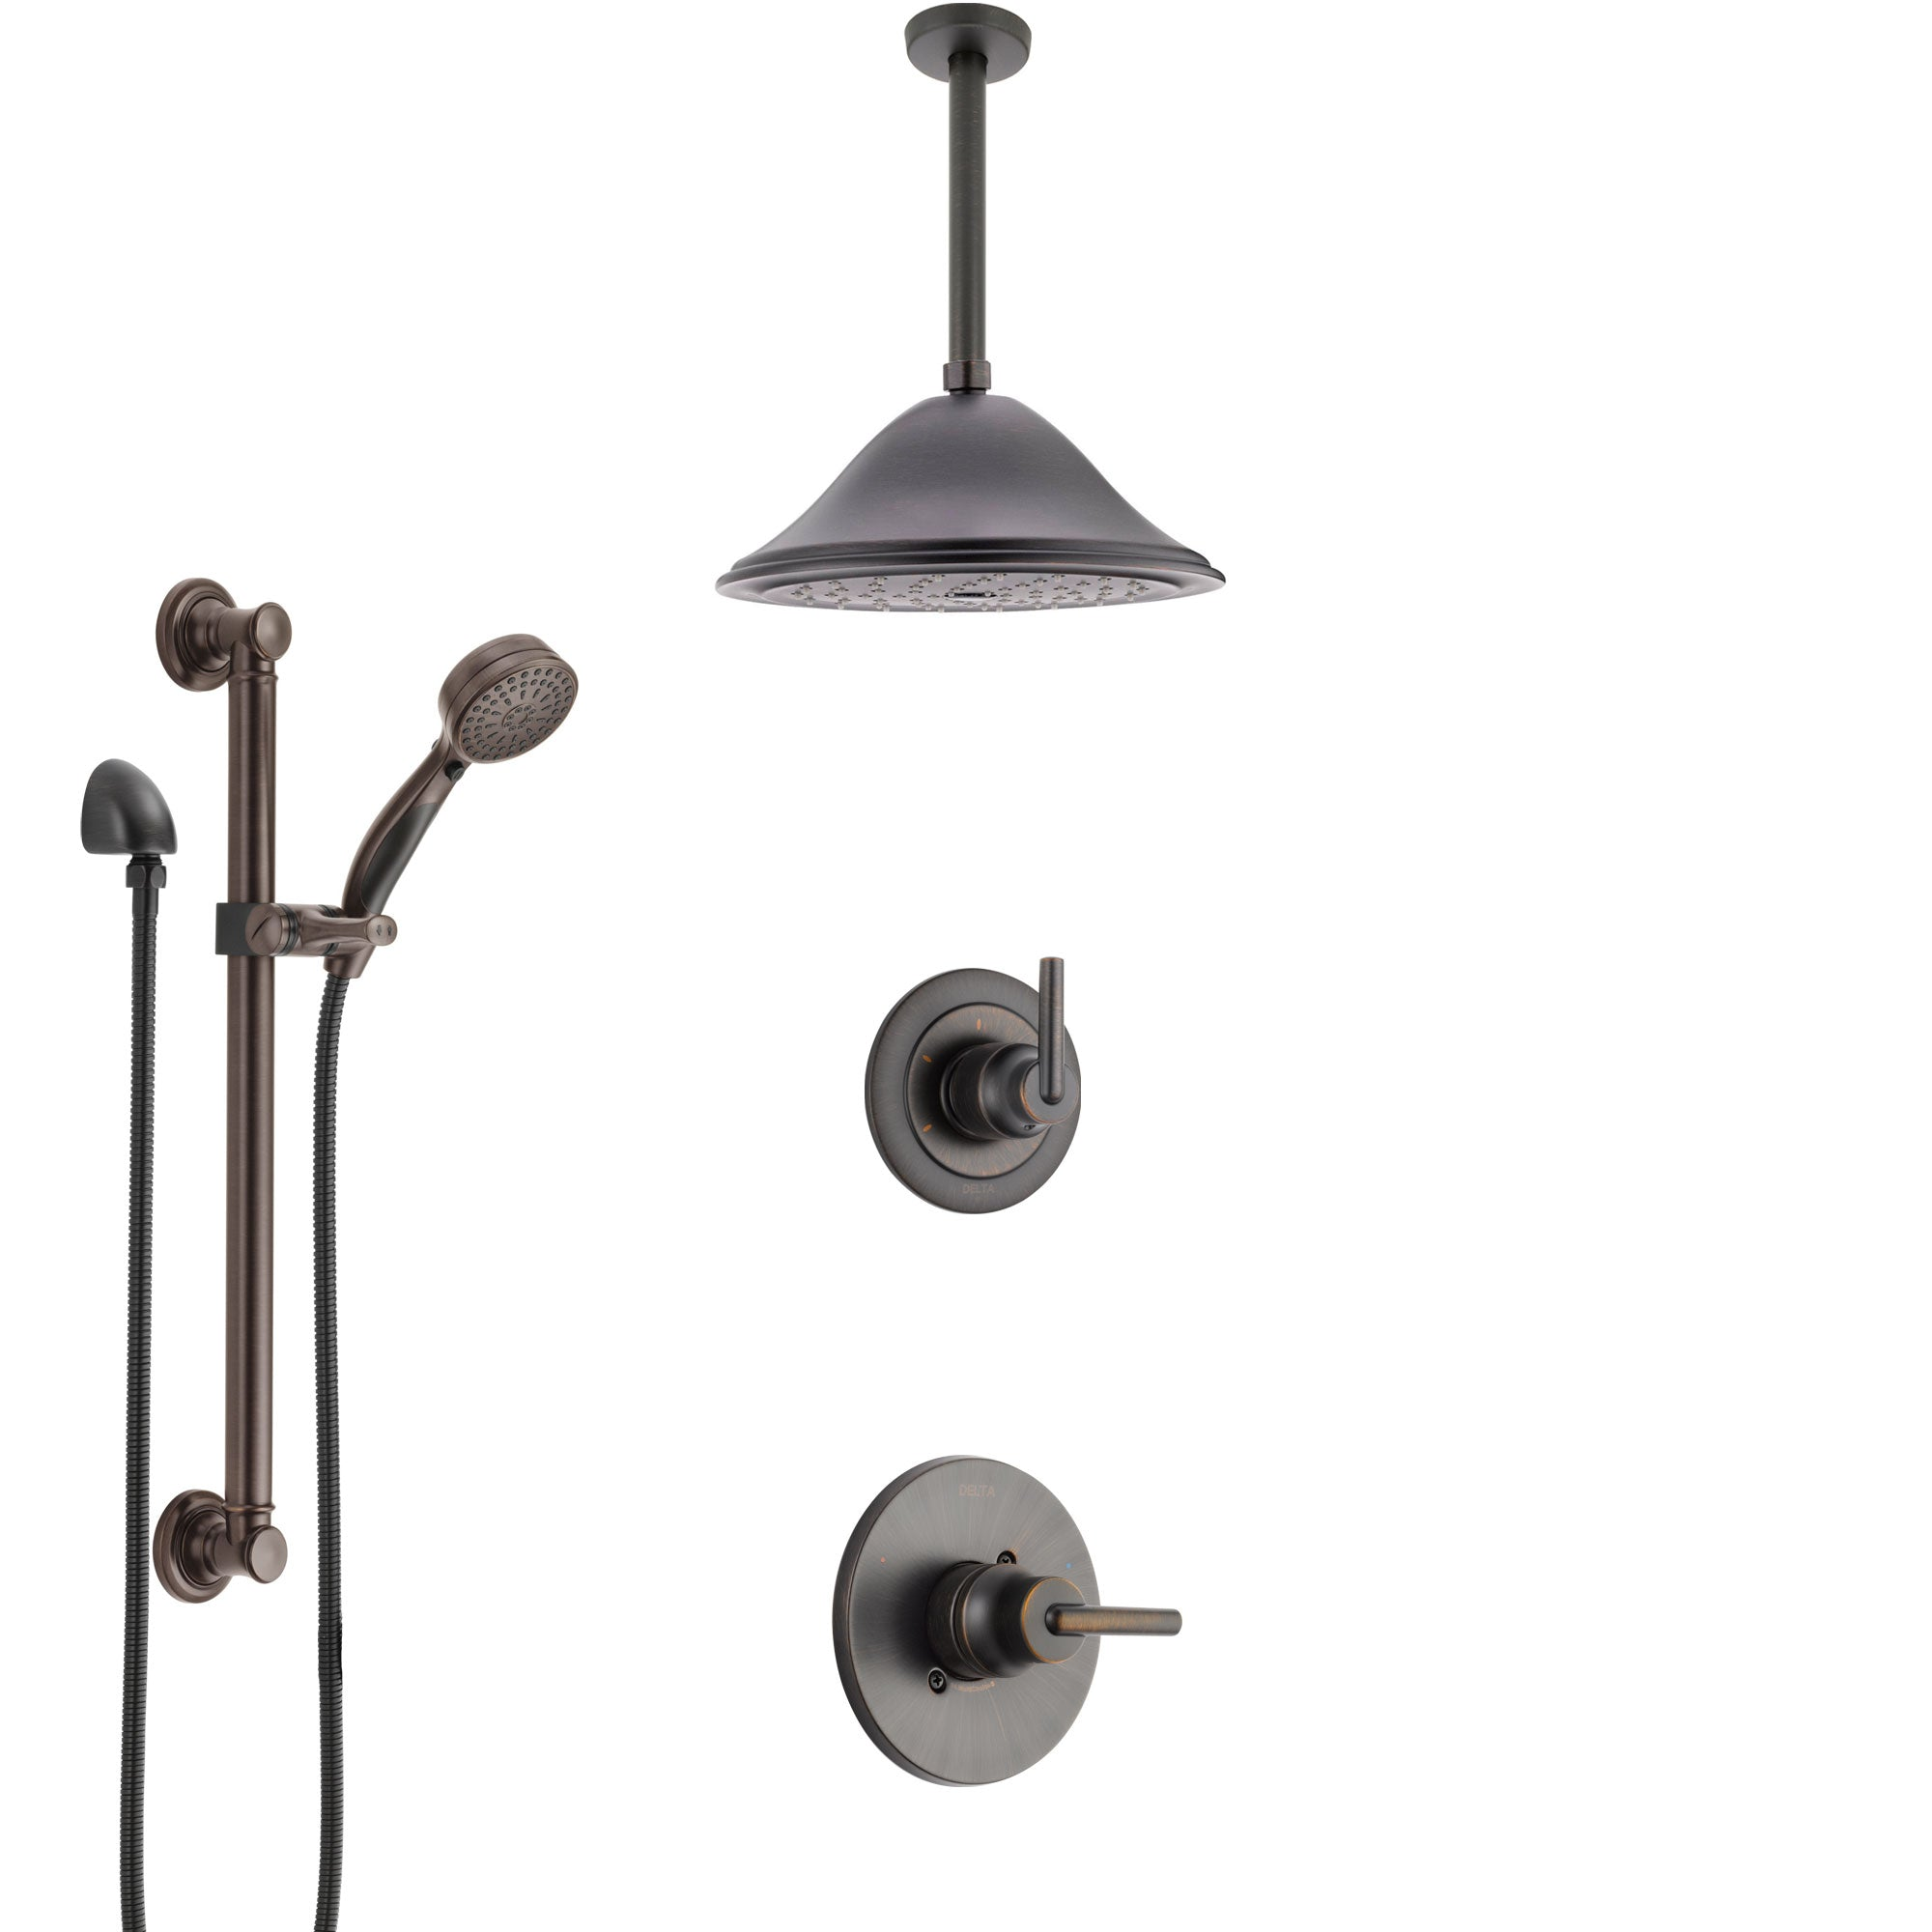 Delta Trinsic Venetian Bronze Shower System with Control Handle, 3-Setting Diverter, Ceiling Mount Showerhead, and Hand Shower with Grab Bar SS1459RB8